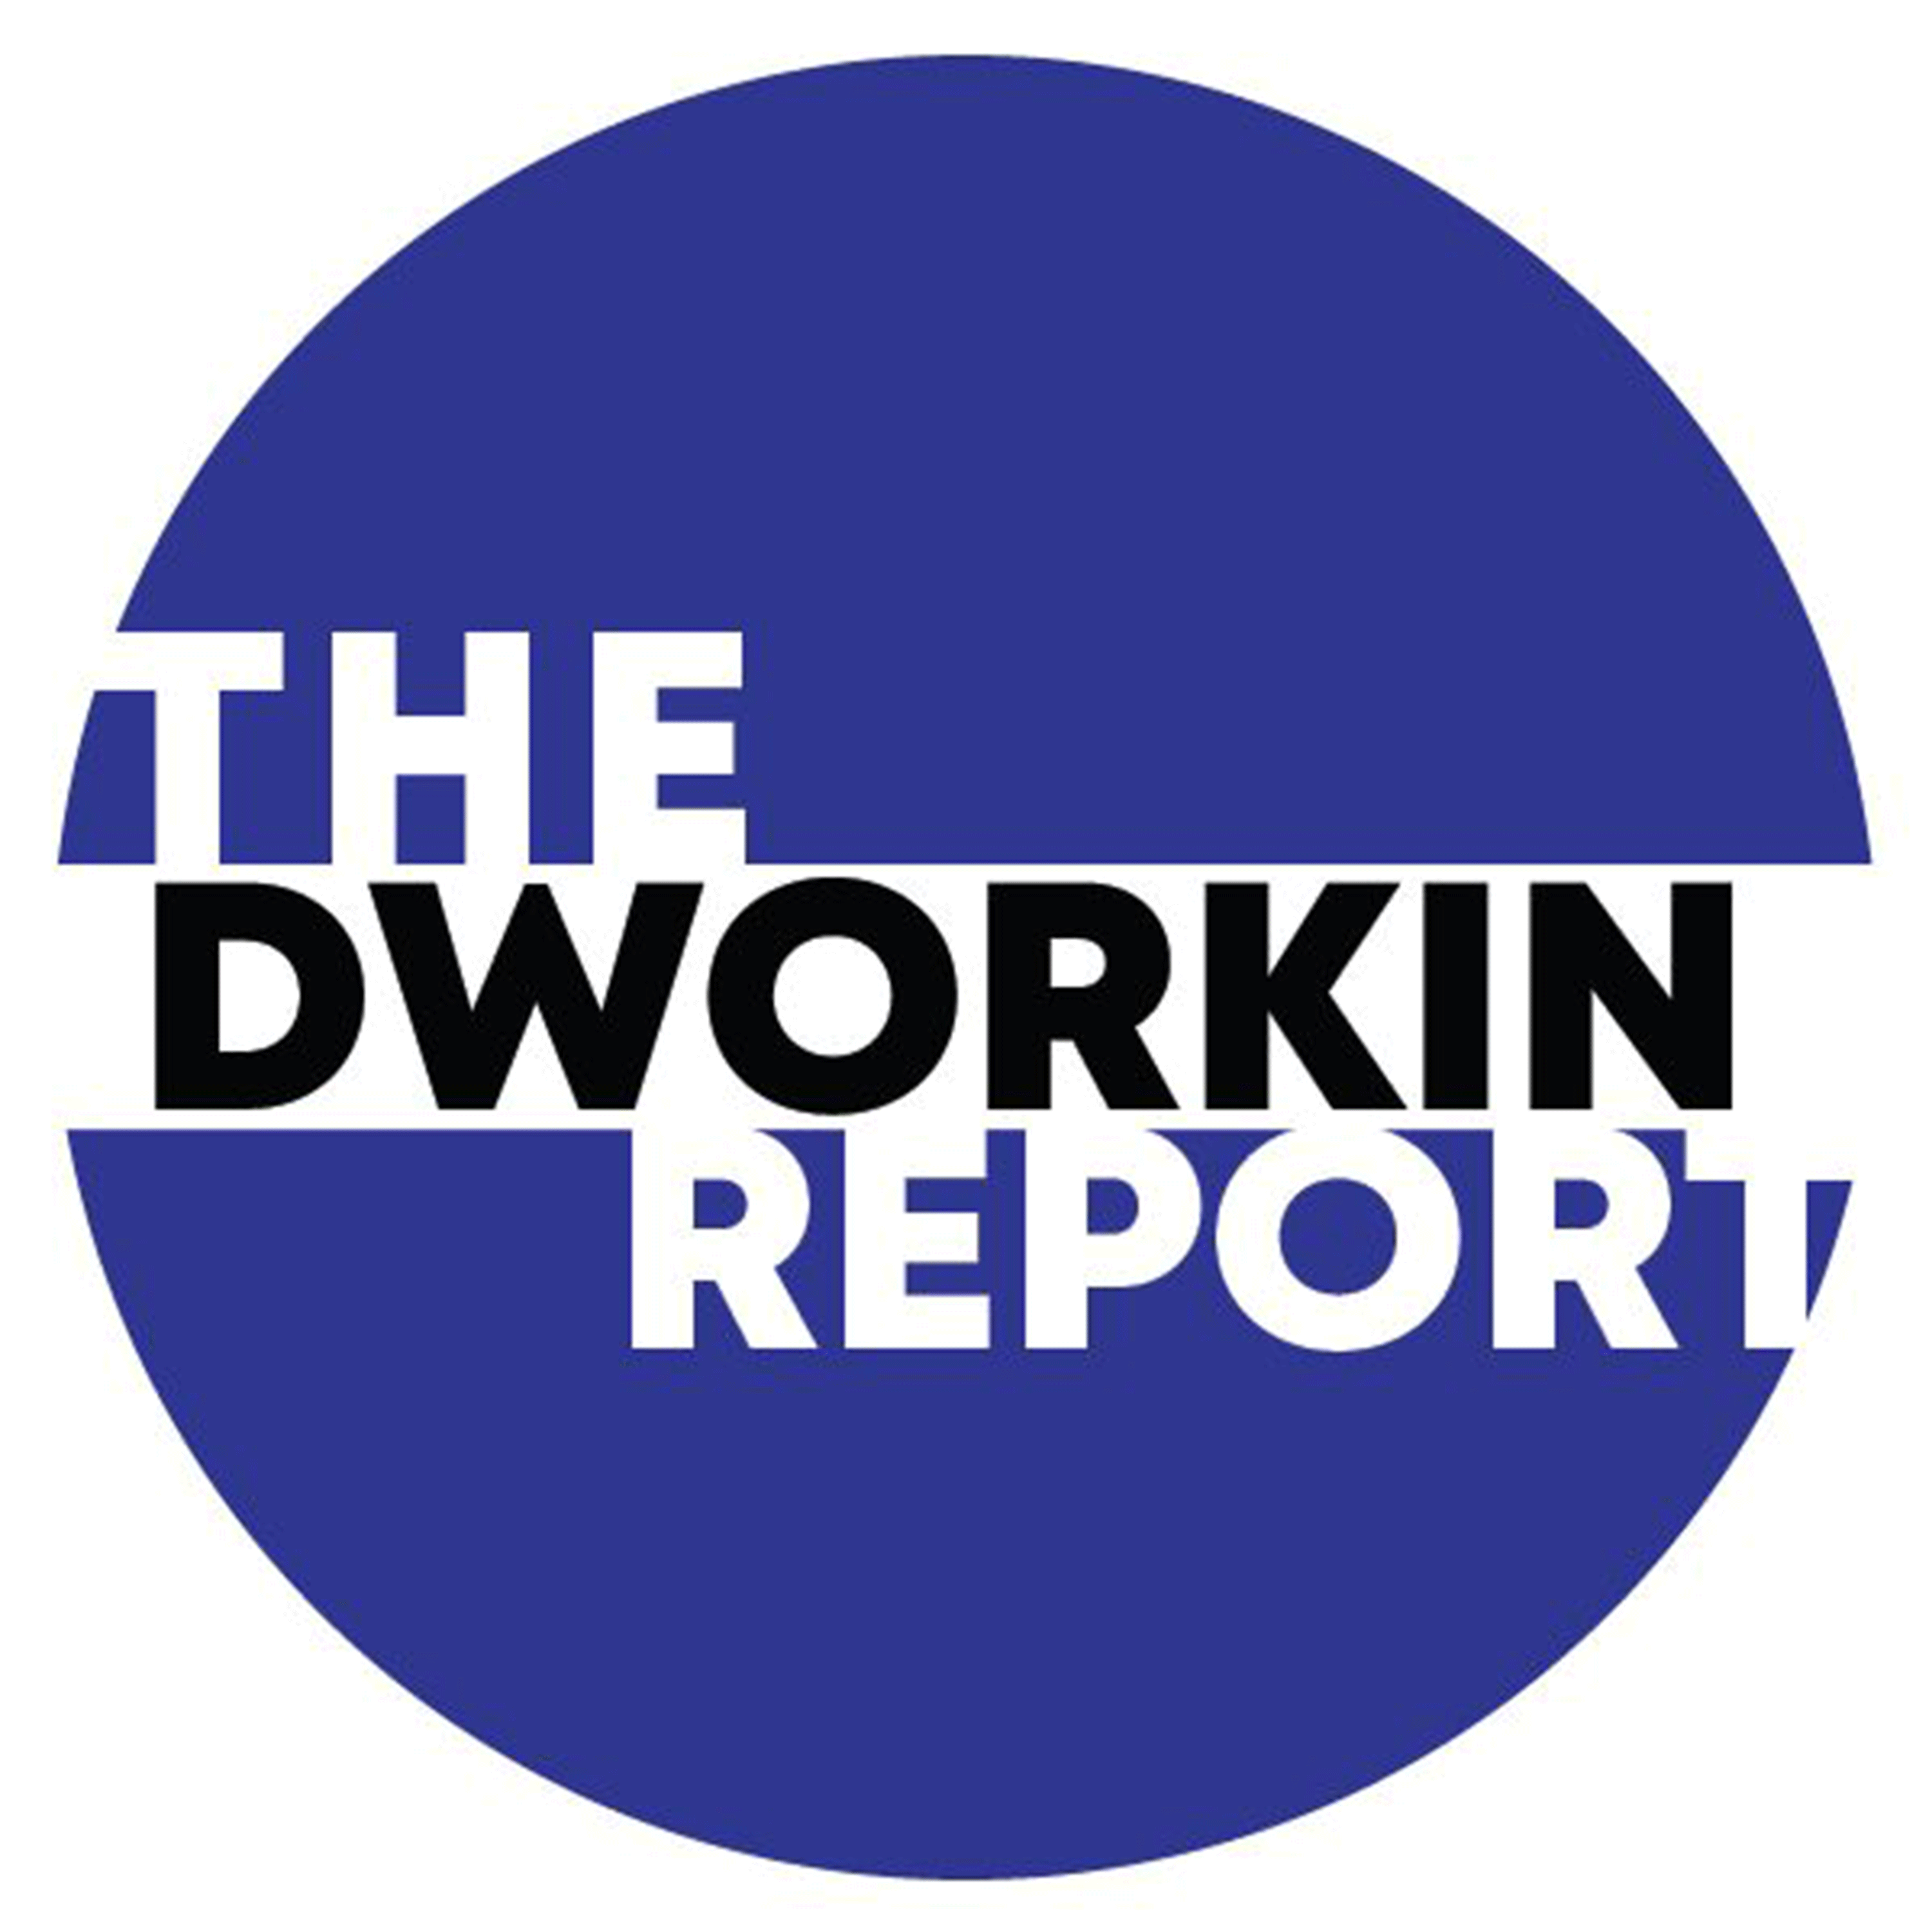 The Dworkin Report